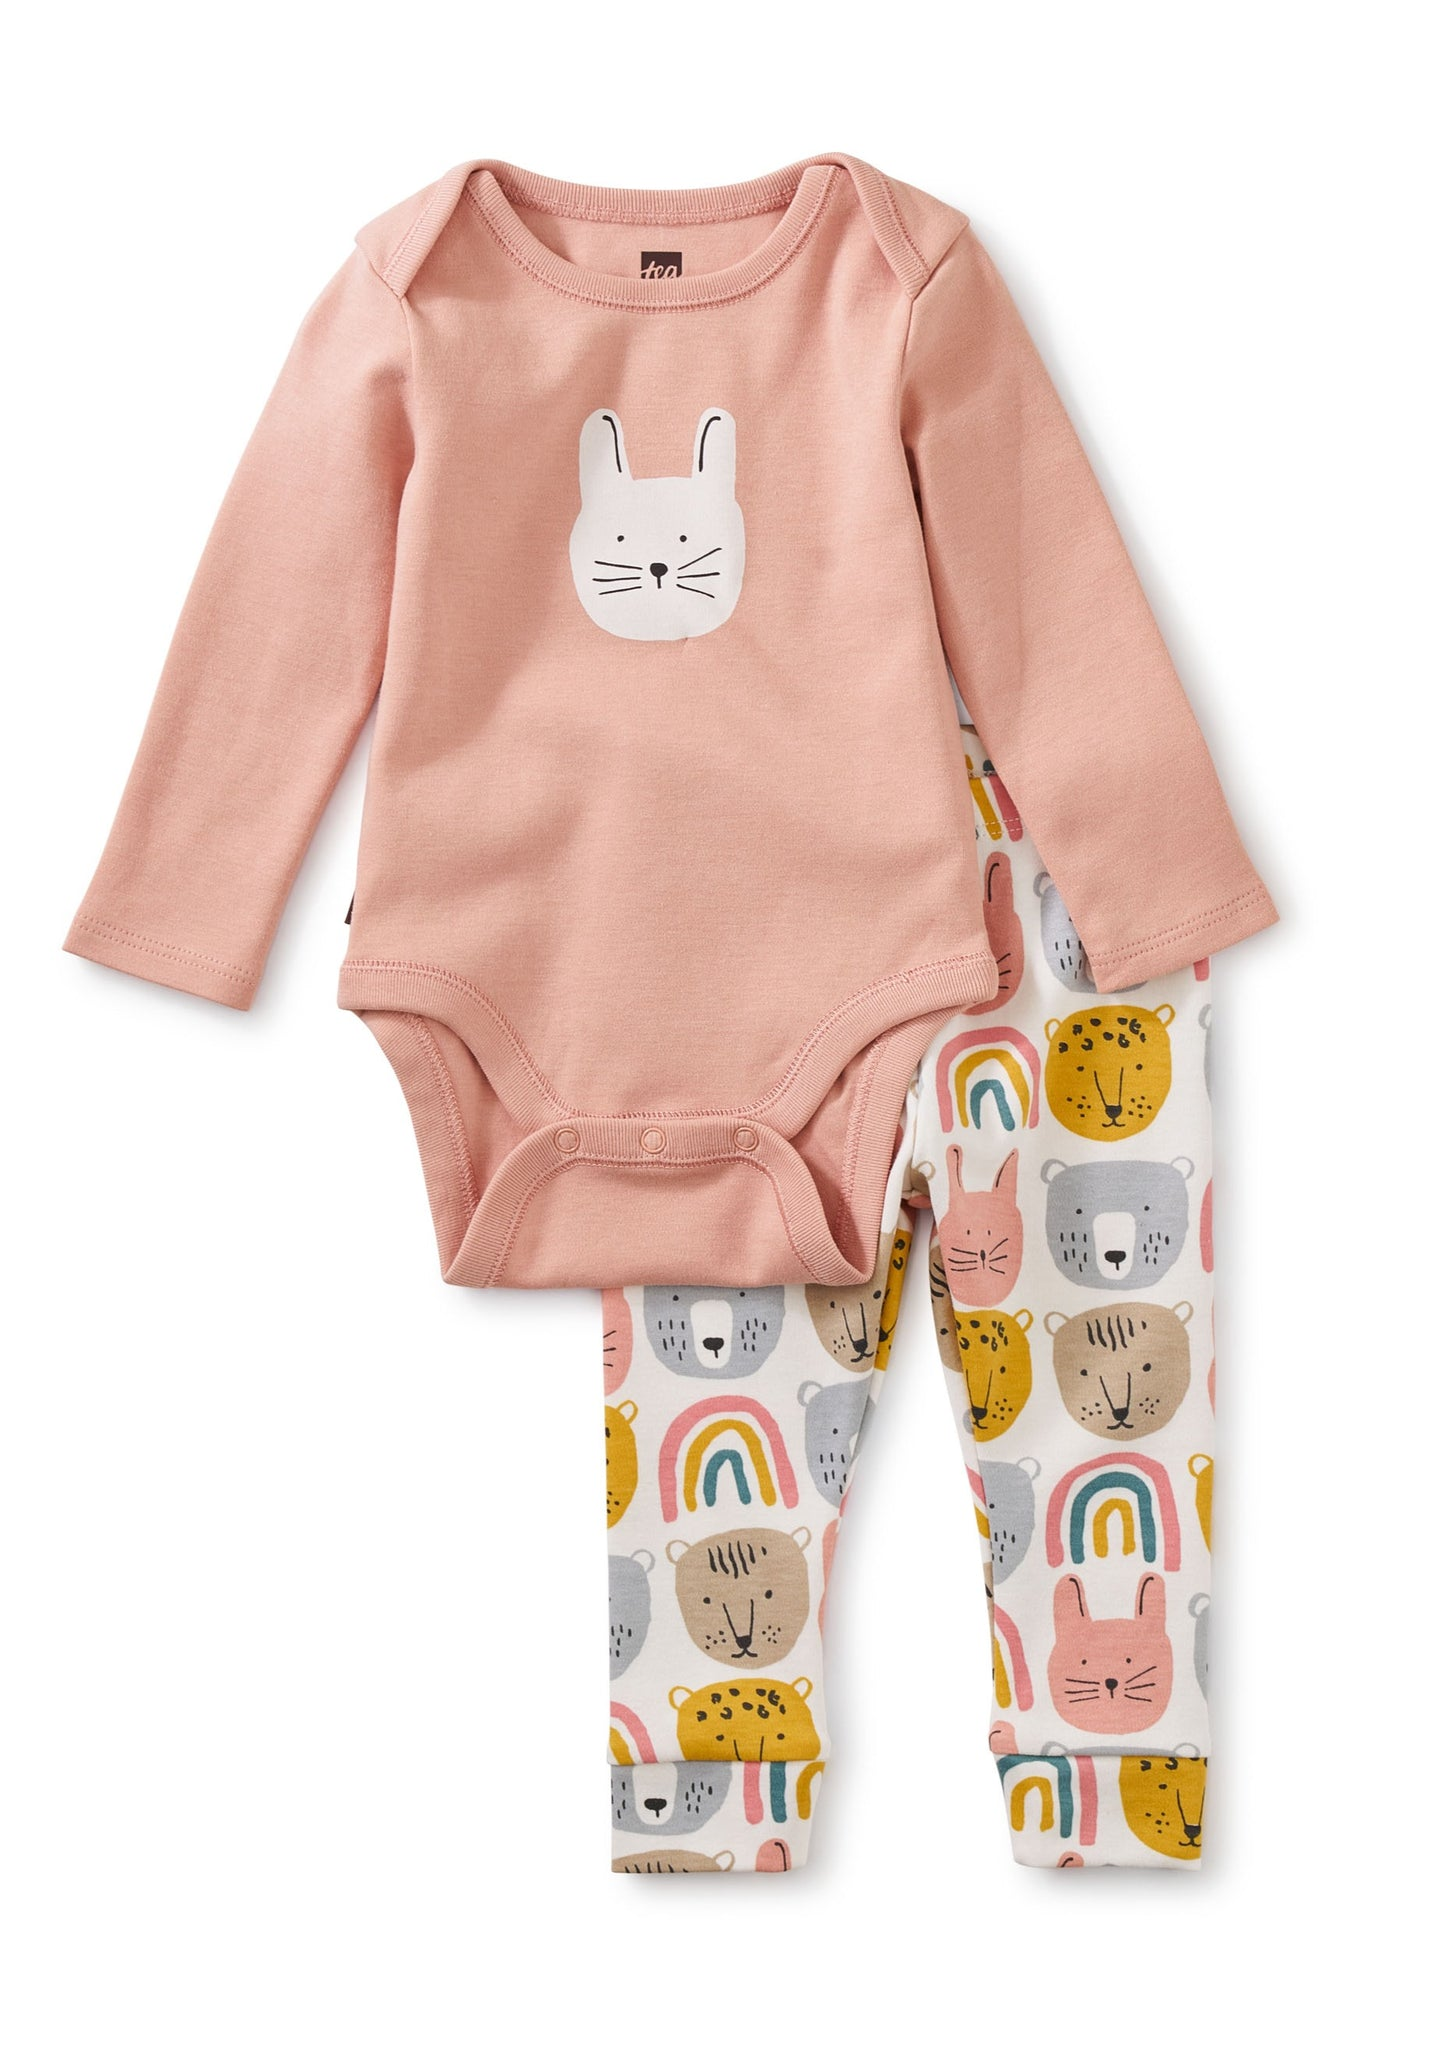 Rainbow Animals Baby Bodysuit Outfit